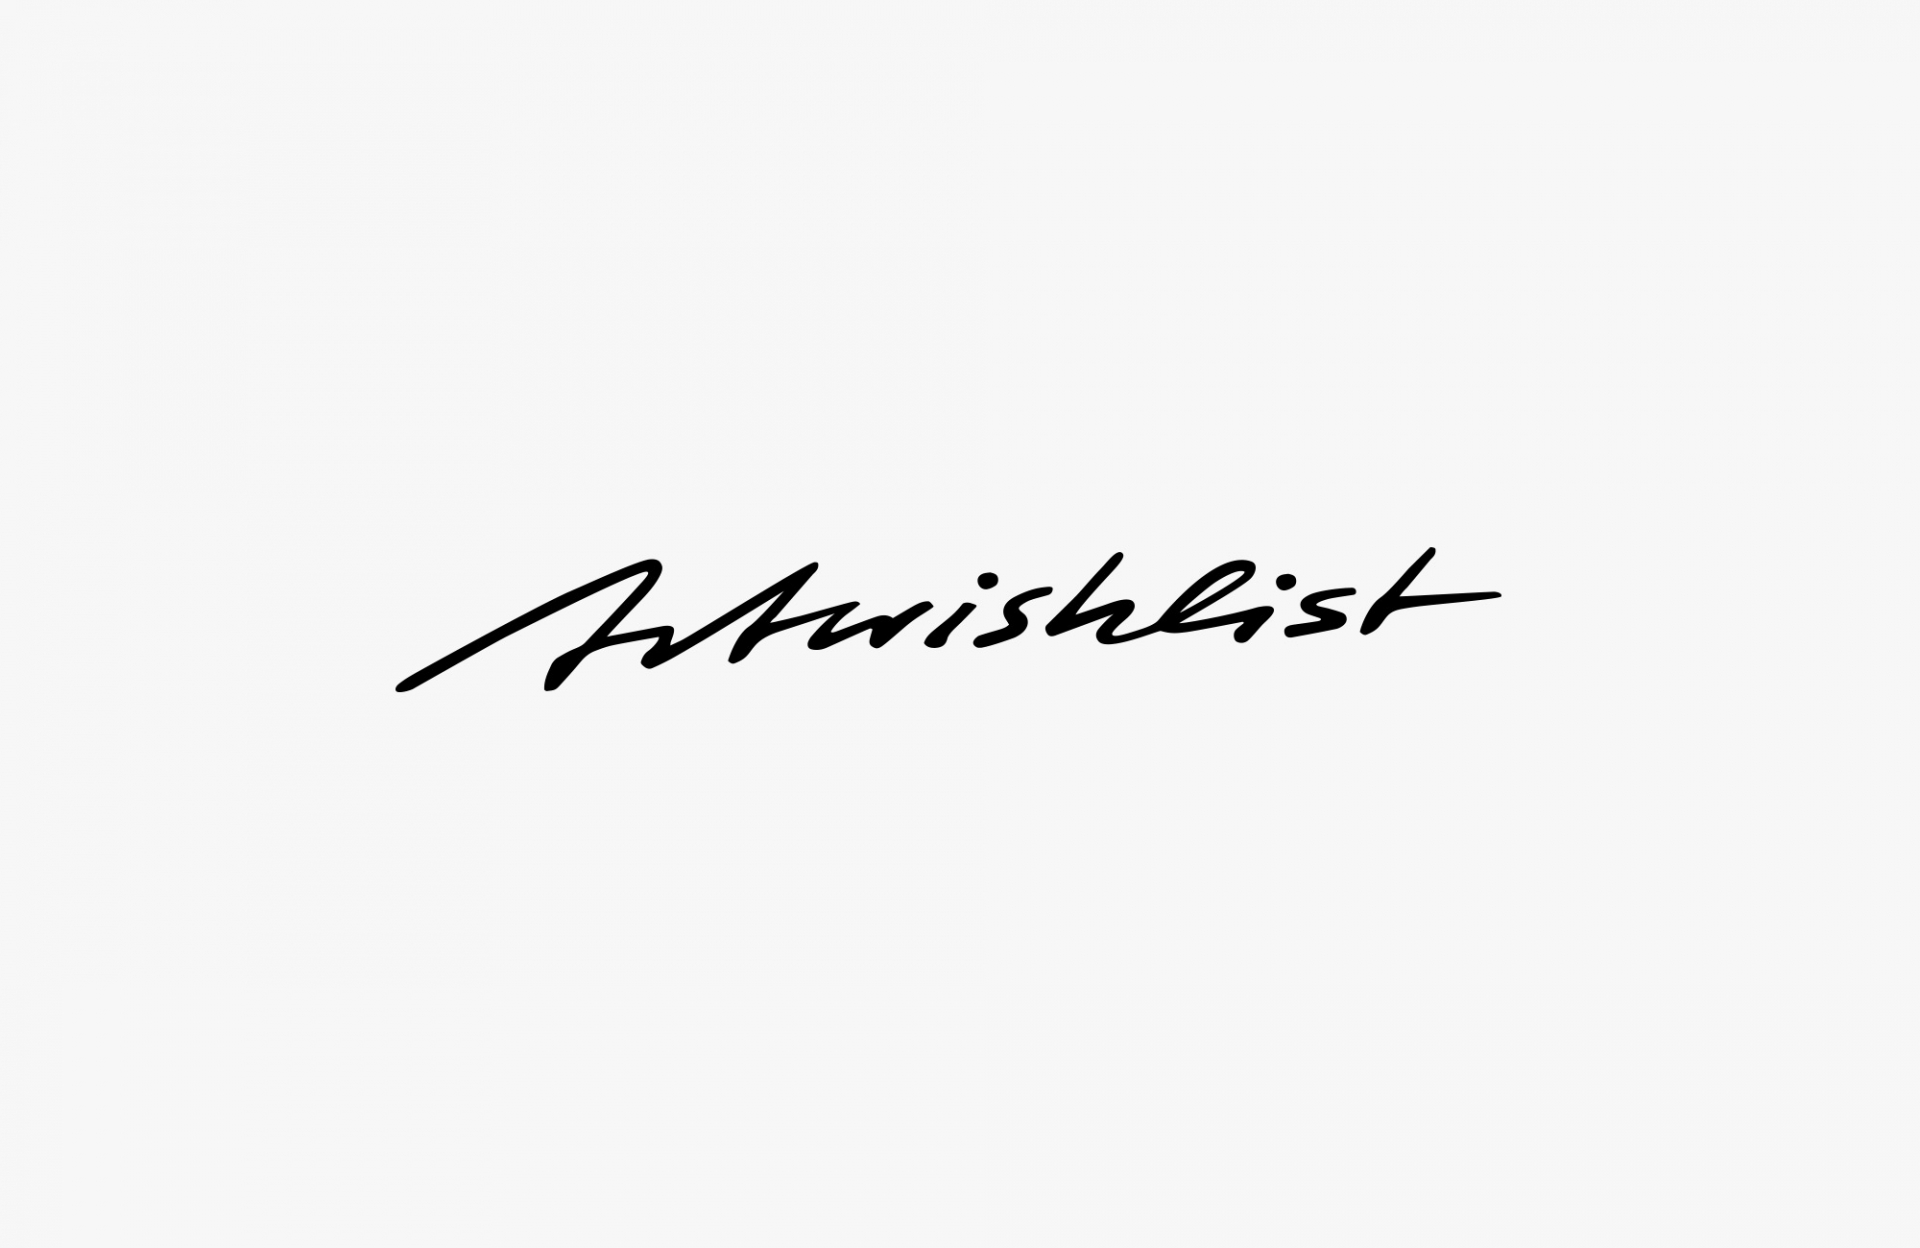 C/O Artwishlist